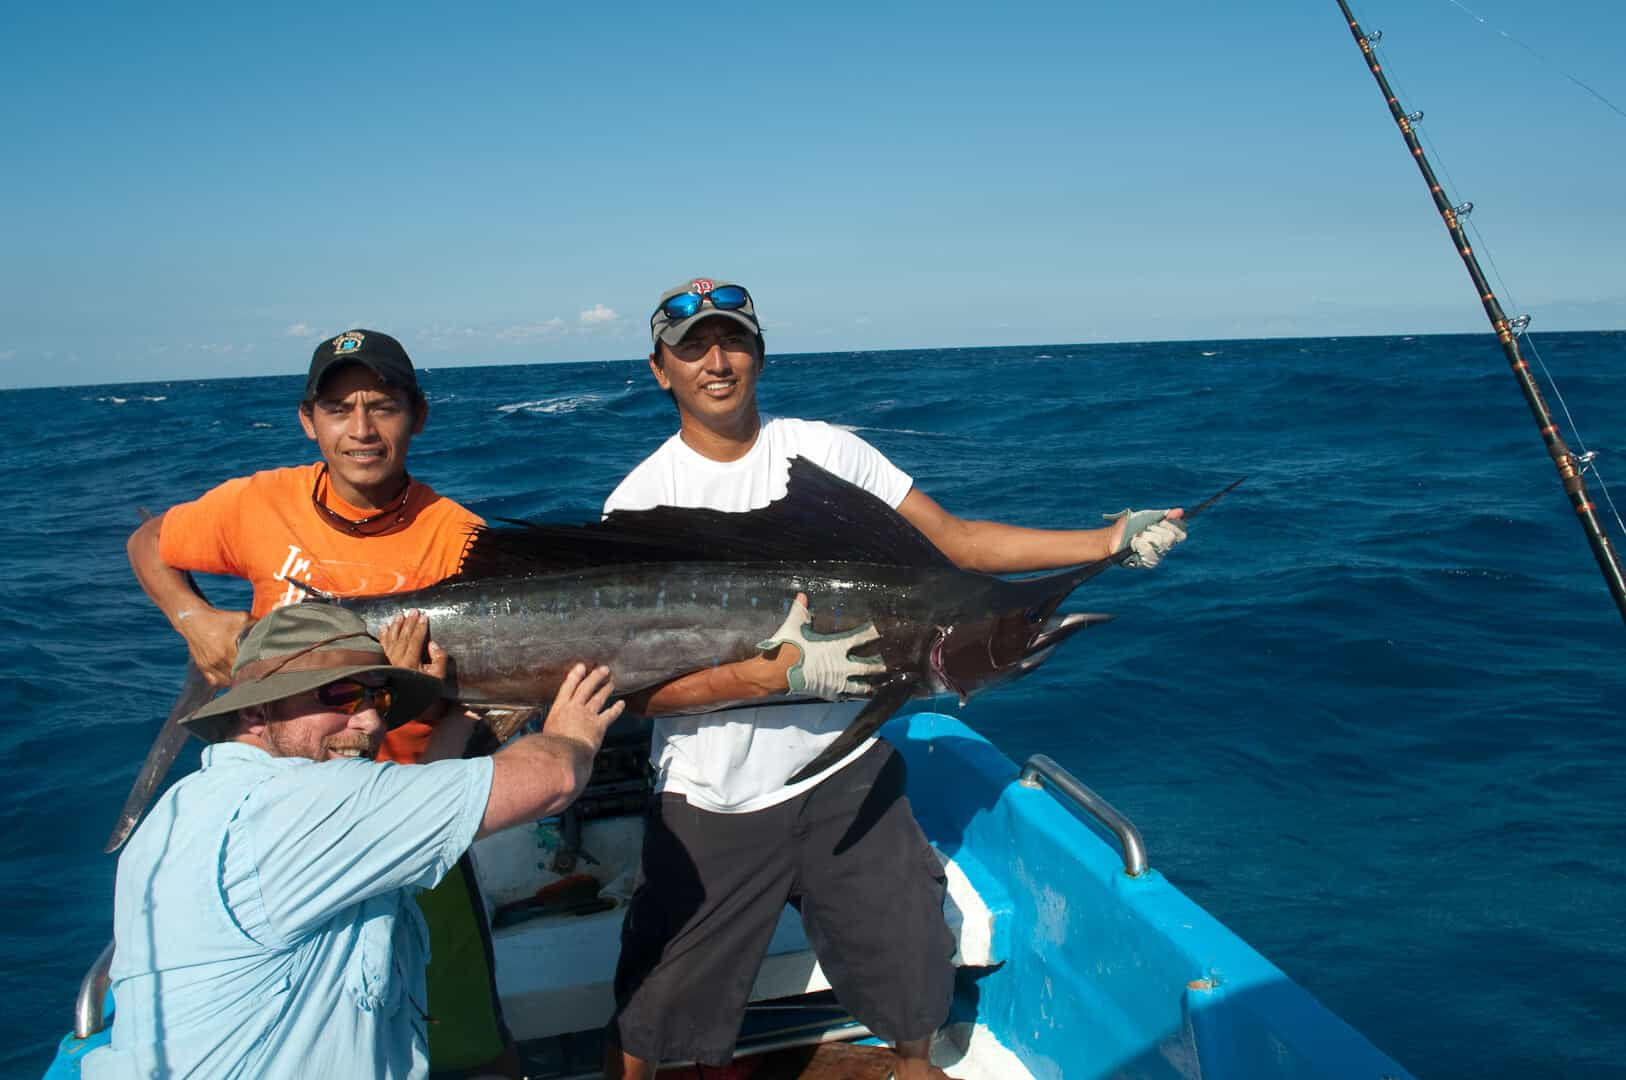 Fishermen on boat with marlin catch and release